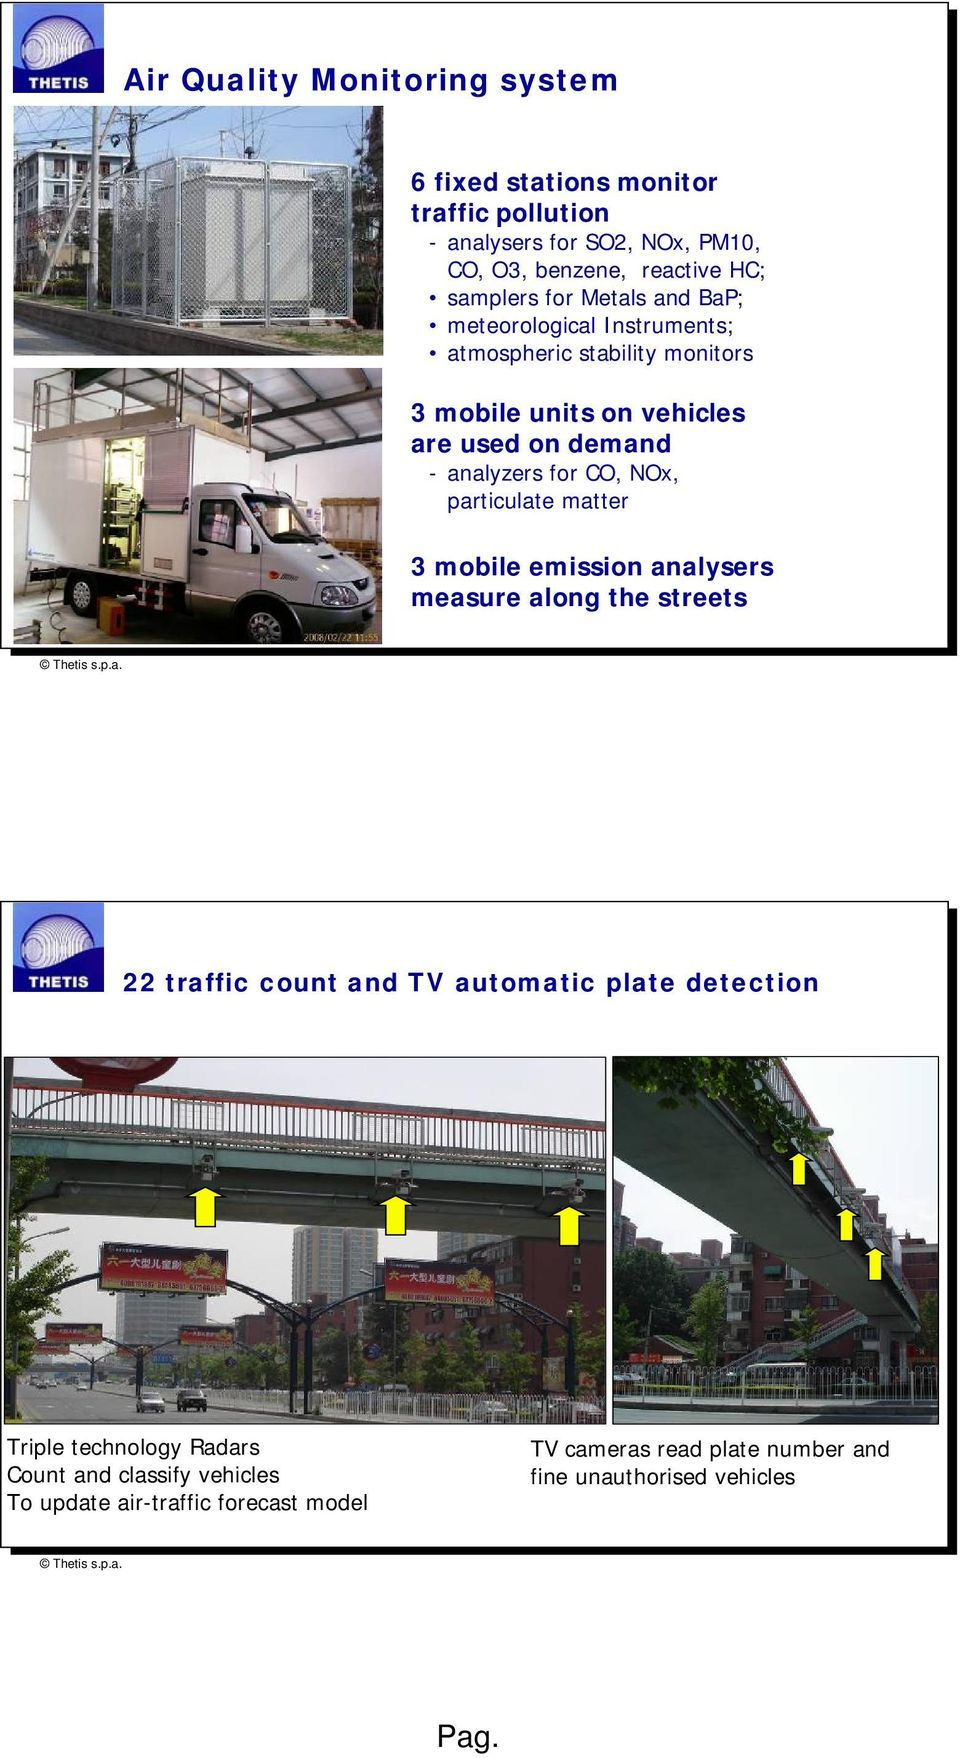 analyzers for CO, NOx, particulate matter 3 mobile emission analysers measure along the streets 22 traffic count and TV automatic plate